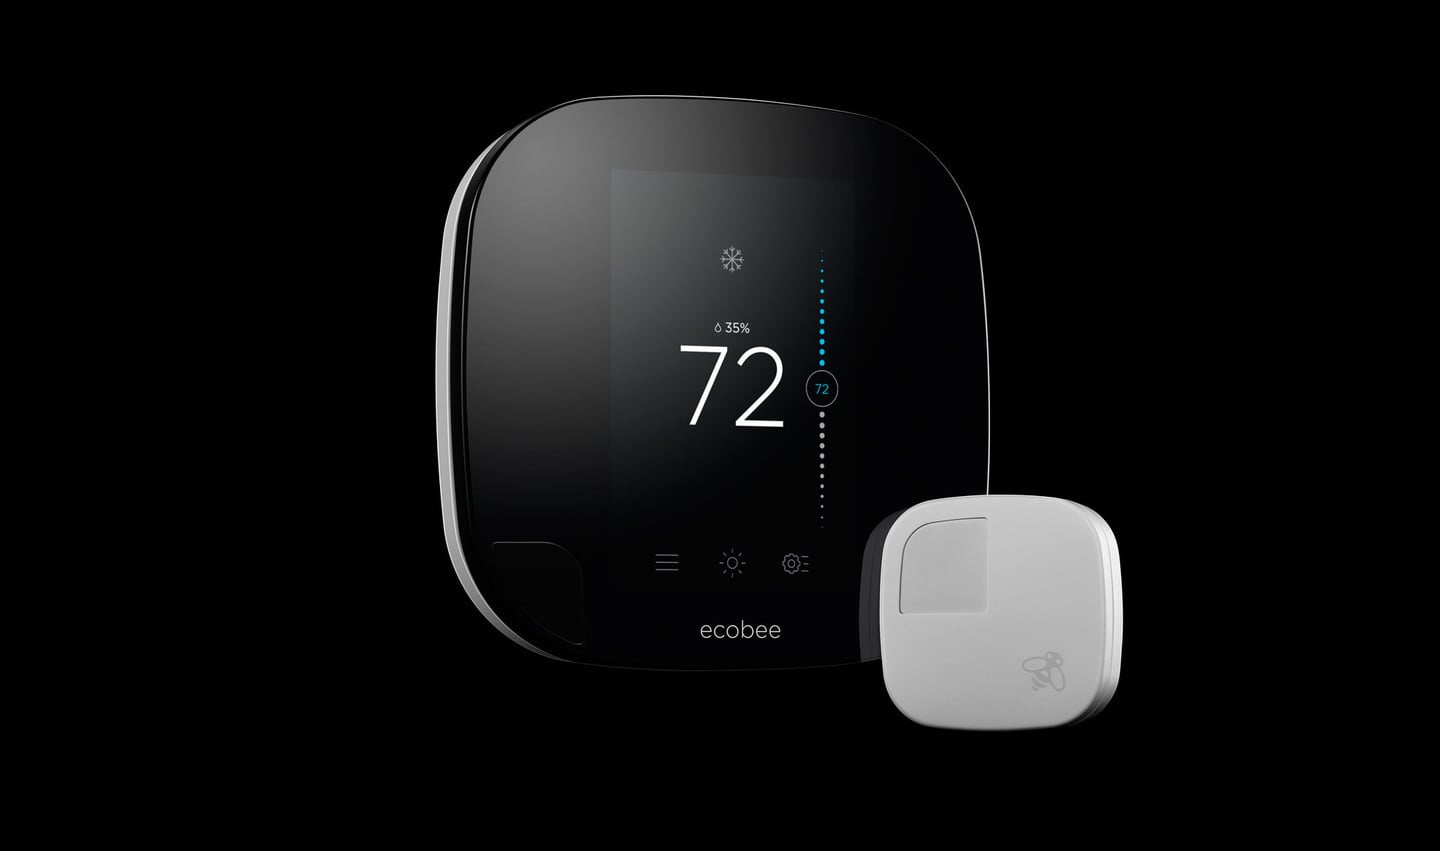 The Ecobee3 Smart Thermostat is 24% Off, the Lowest We've Ever seen